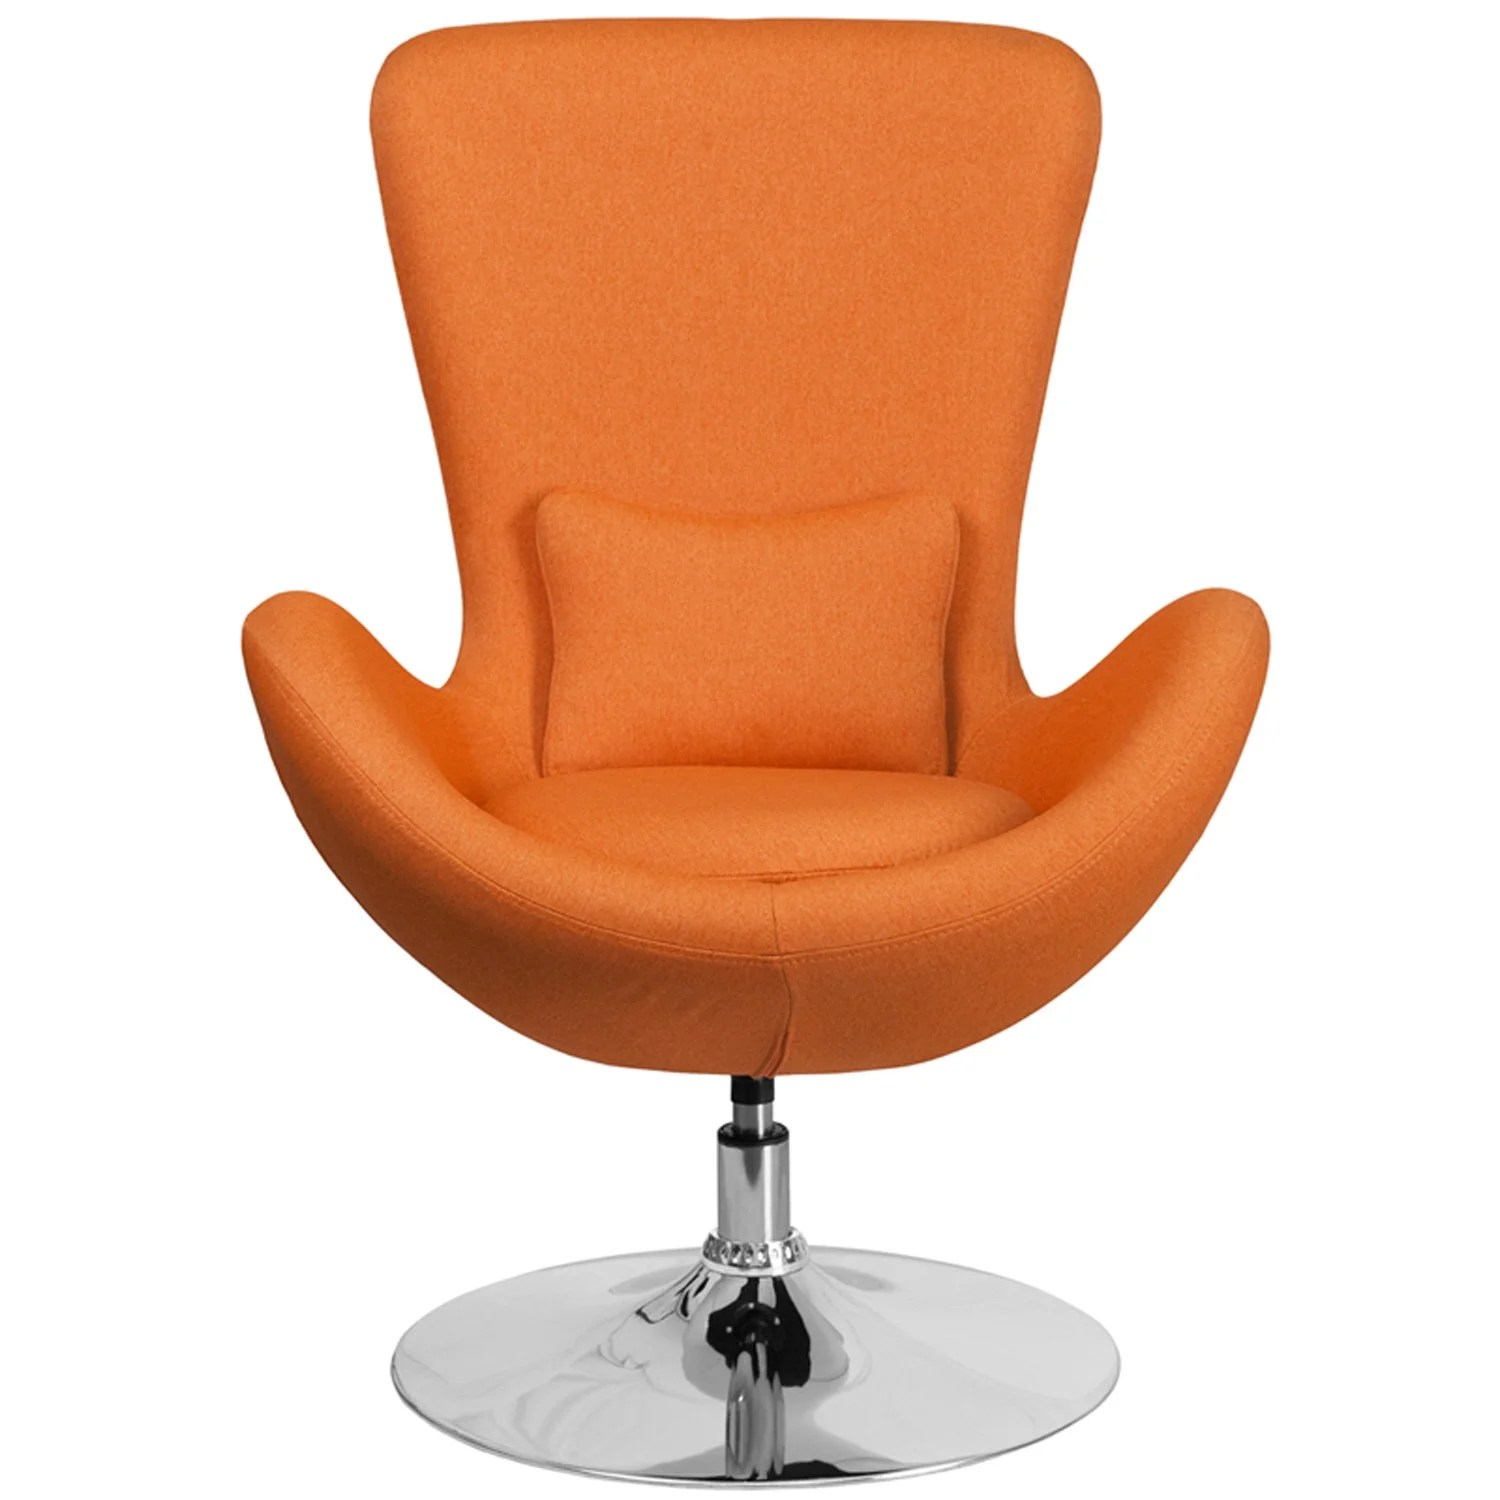 Orange Office Chairs Radisson Orange Fabric Side Office Reception Guest Egg Chair Curved Arms